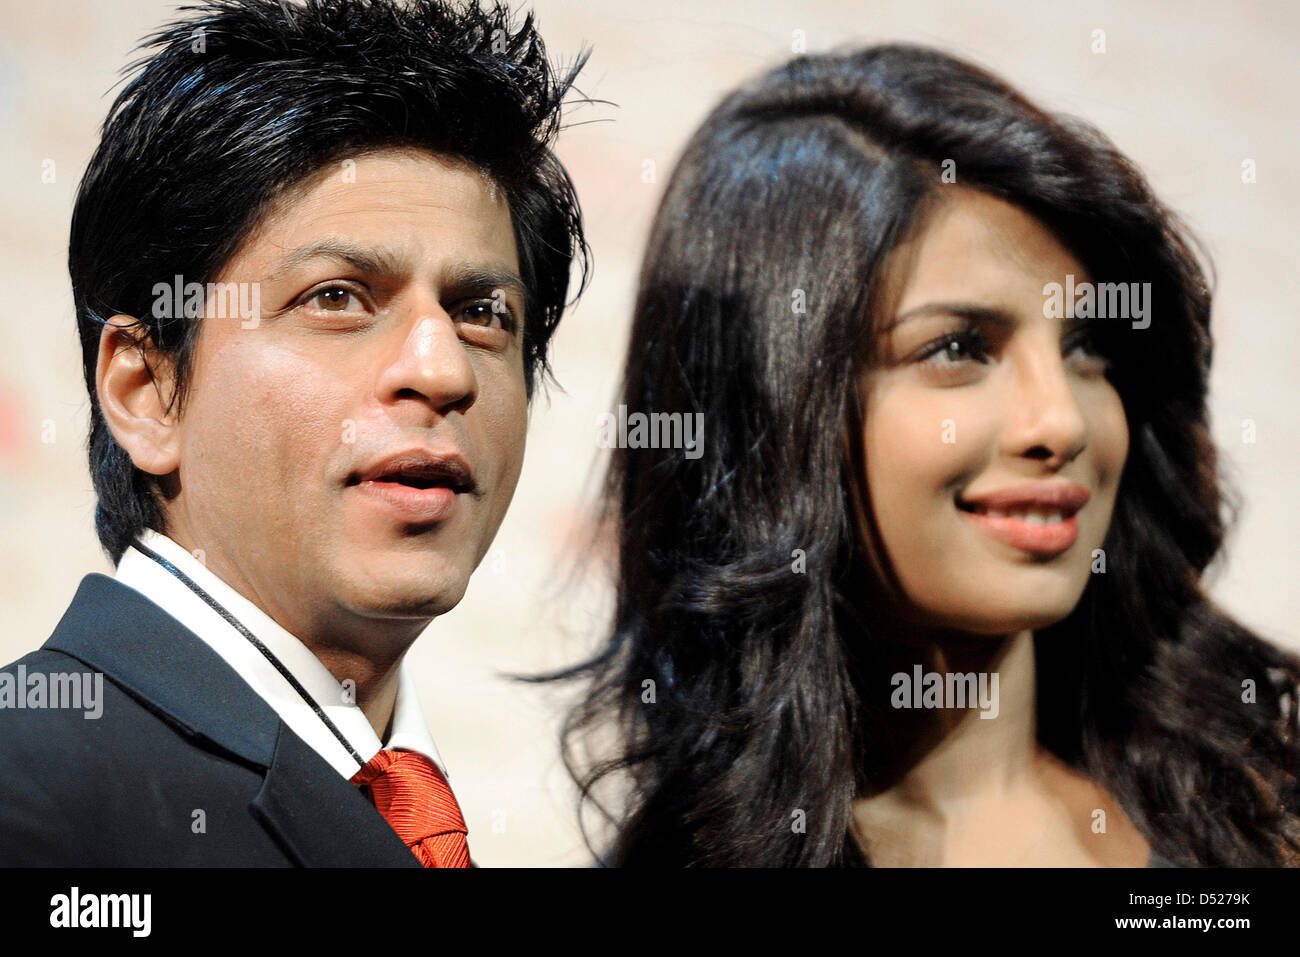 The Indian Actor Shahrukh Khan And Indian Actress Priyanka Chopra Stand On Stage During A Press Conference At The Event Venue Friedrichstadtpalast In Berlin